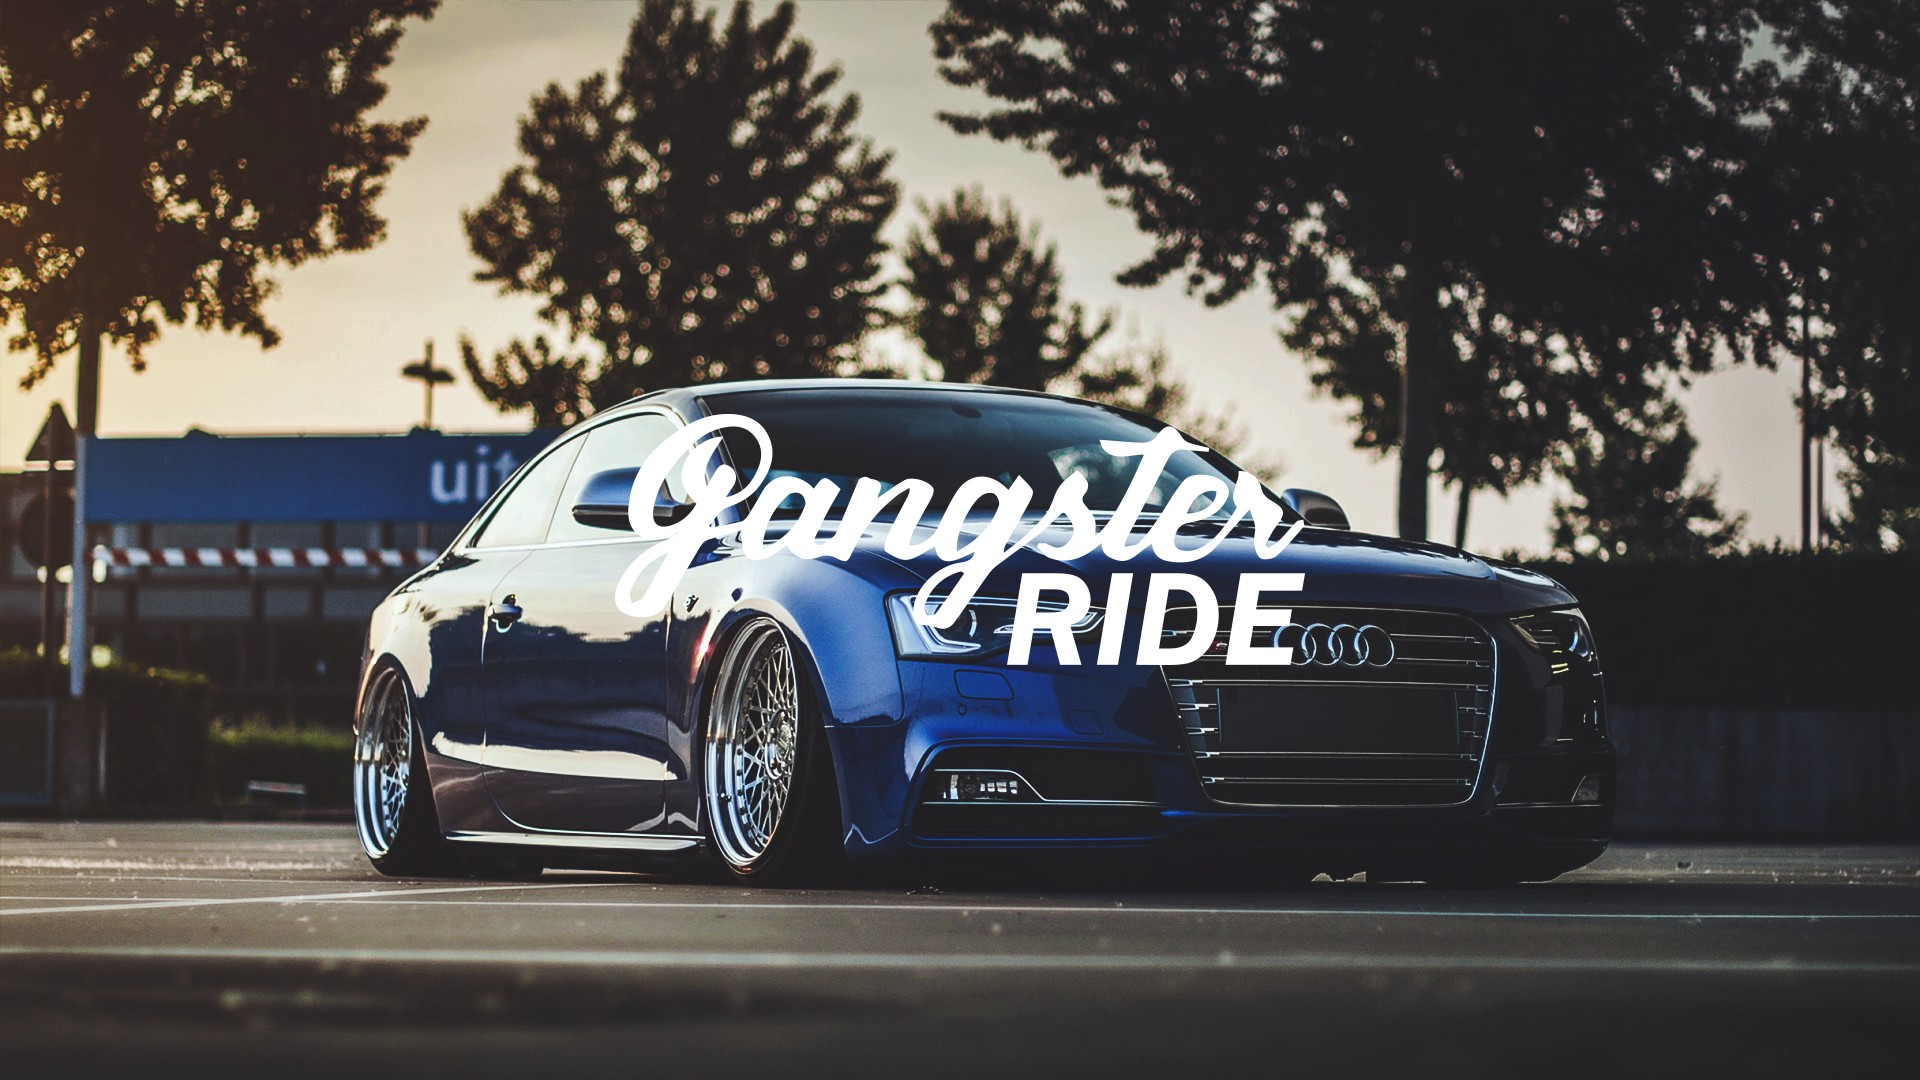 Car 5760x1080 Wallpaper Gangster Ride Car Tuning Lowrider Audi Colorful